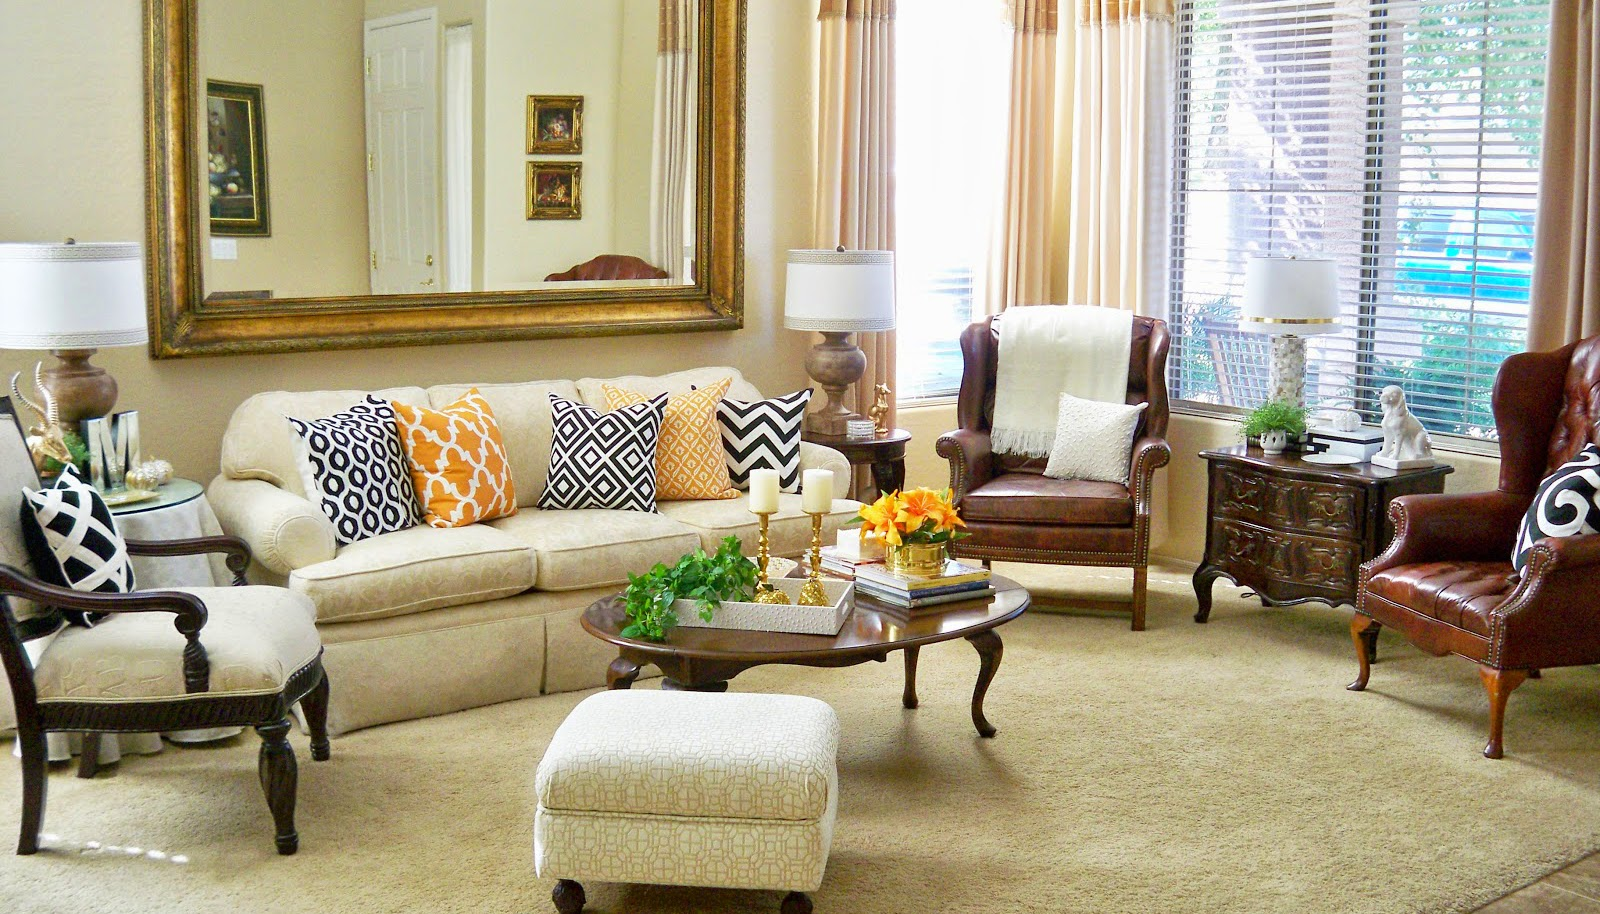 Interior Decor Home Decoration Ideas With Home Fabrics And Rugs Decorative Upholstery